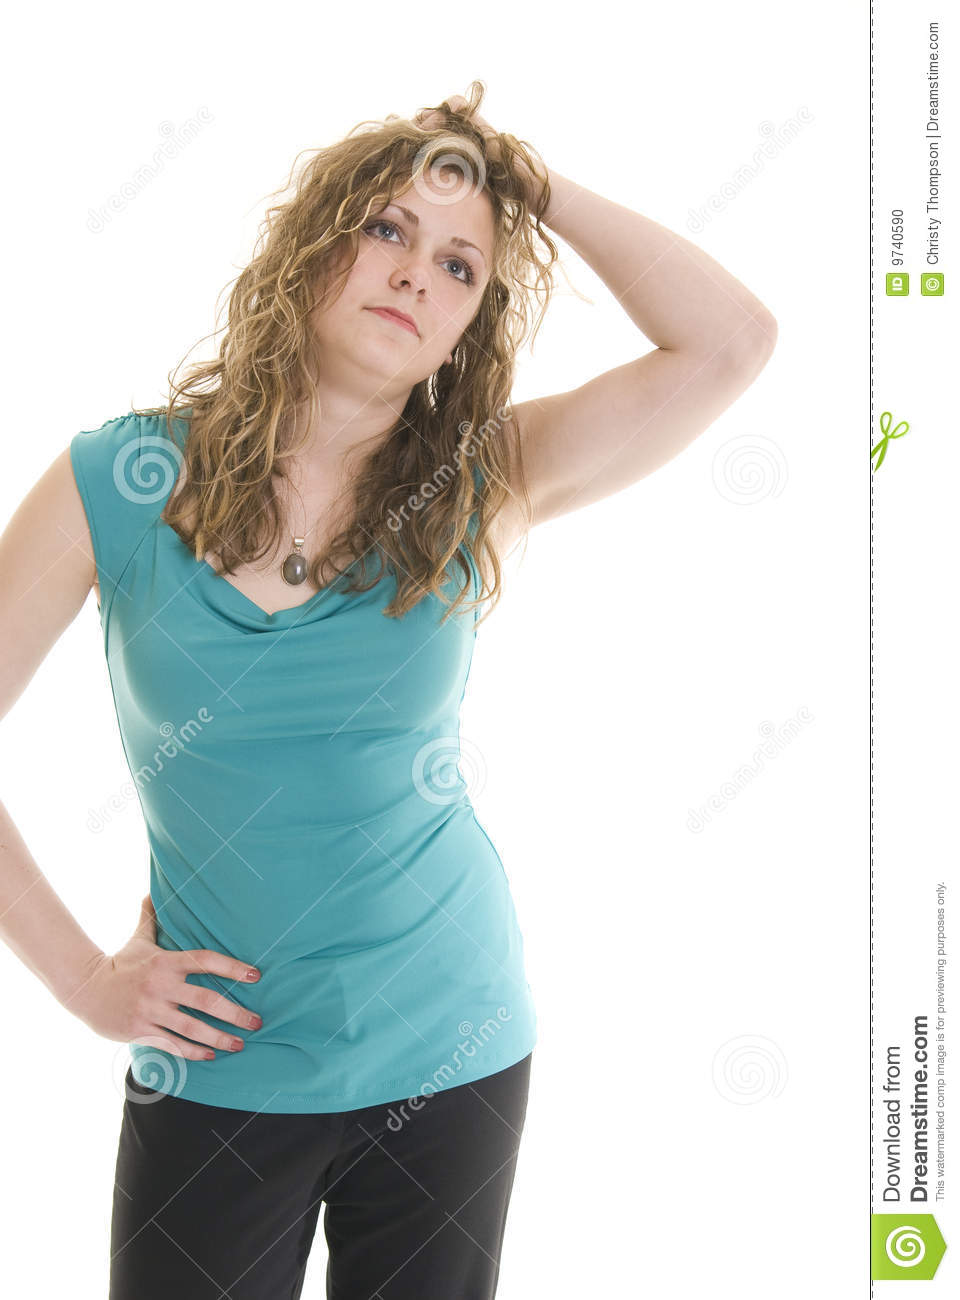 Annoyed caucasian woman with one hand in her hair